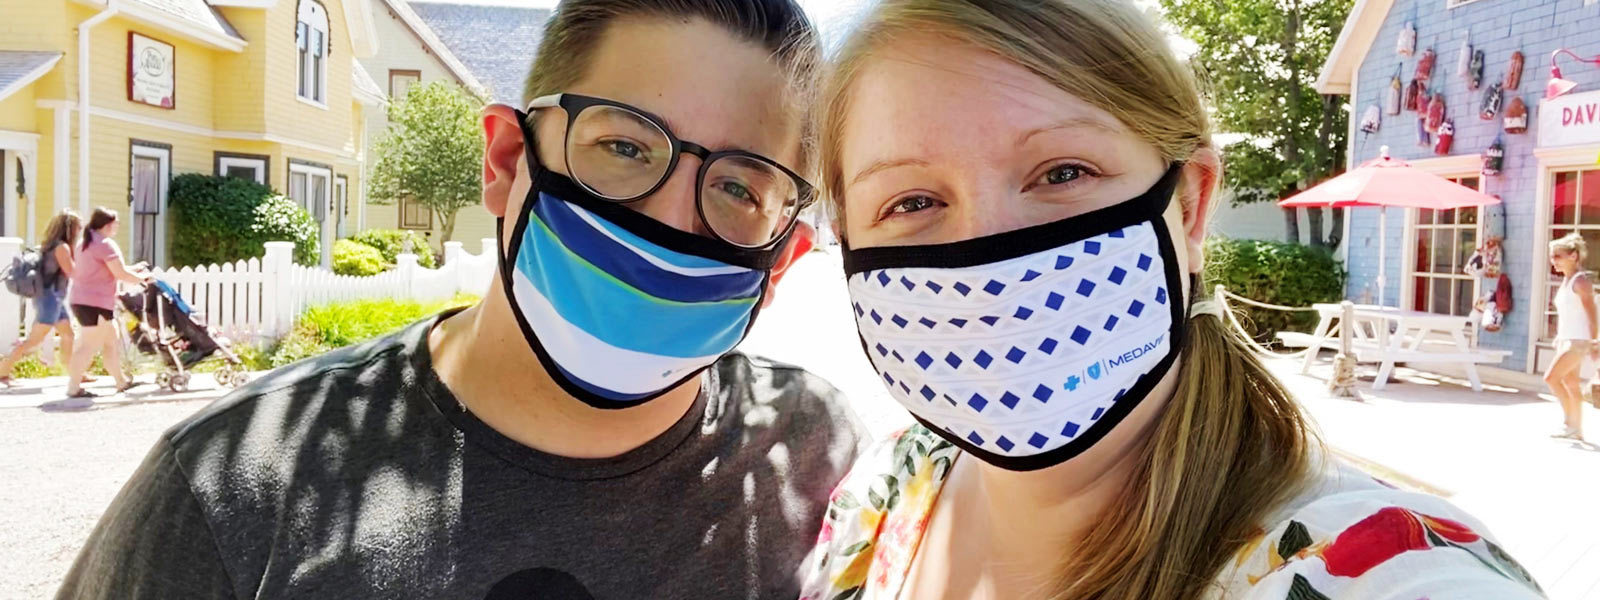 Image of a man and woman wearing masks on a small town main street